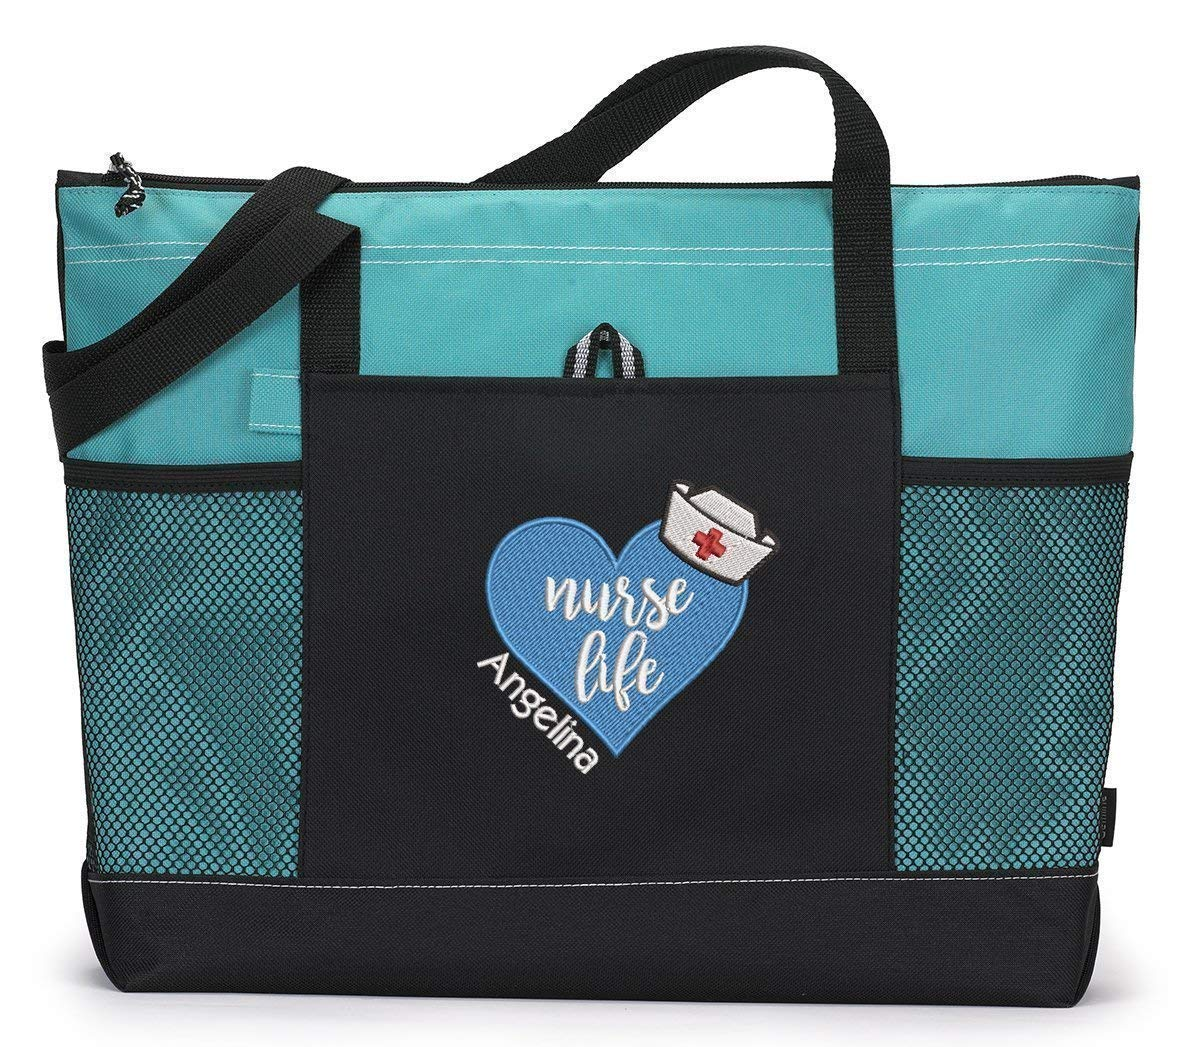 Nurse Life Heart RN LPN Embroidered 55% OFF Bag Tote Max 85% OFF LVN Personalized